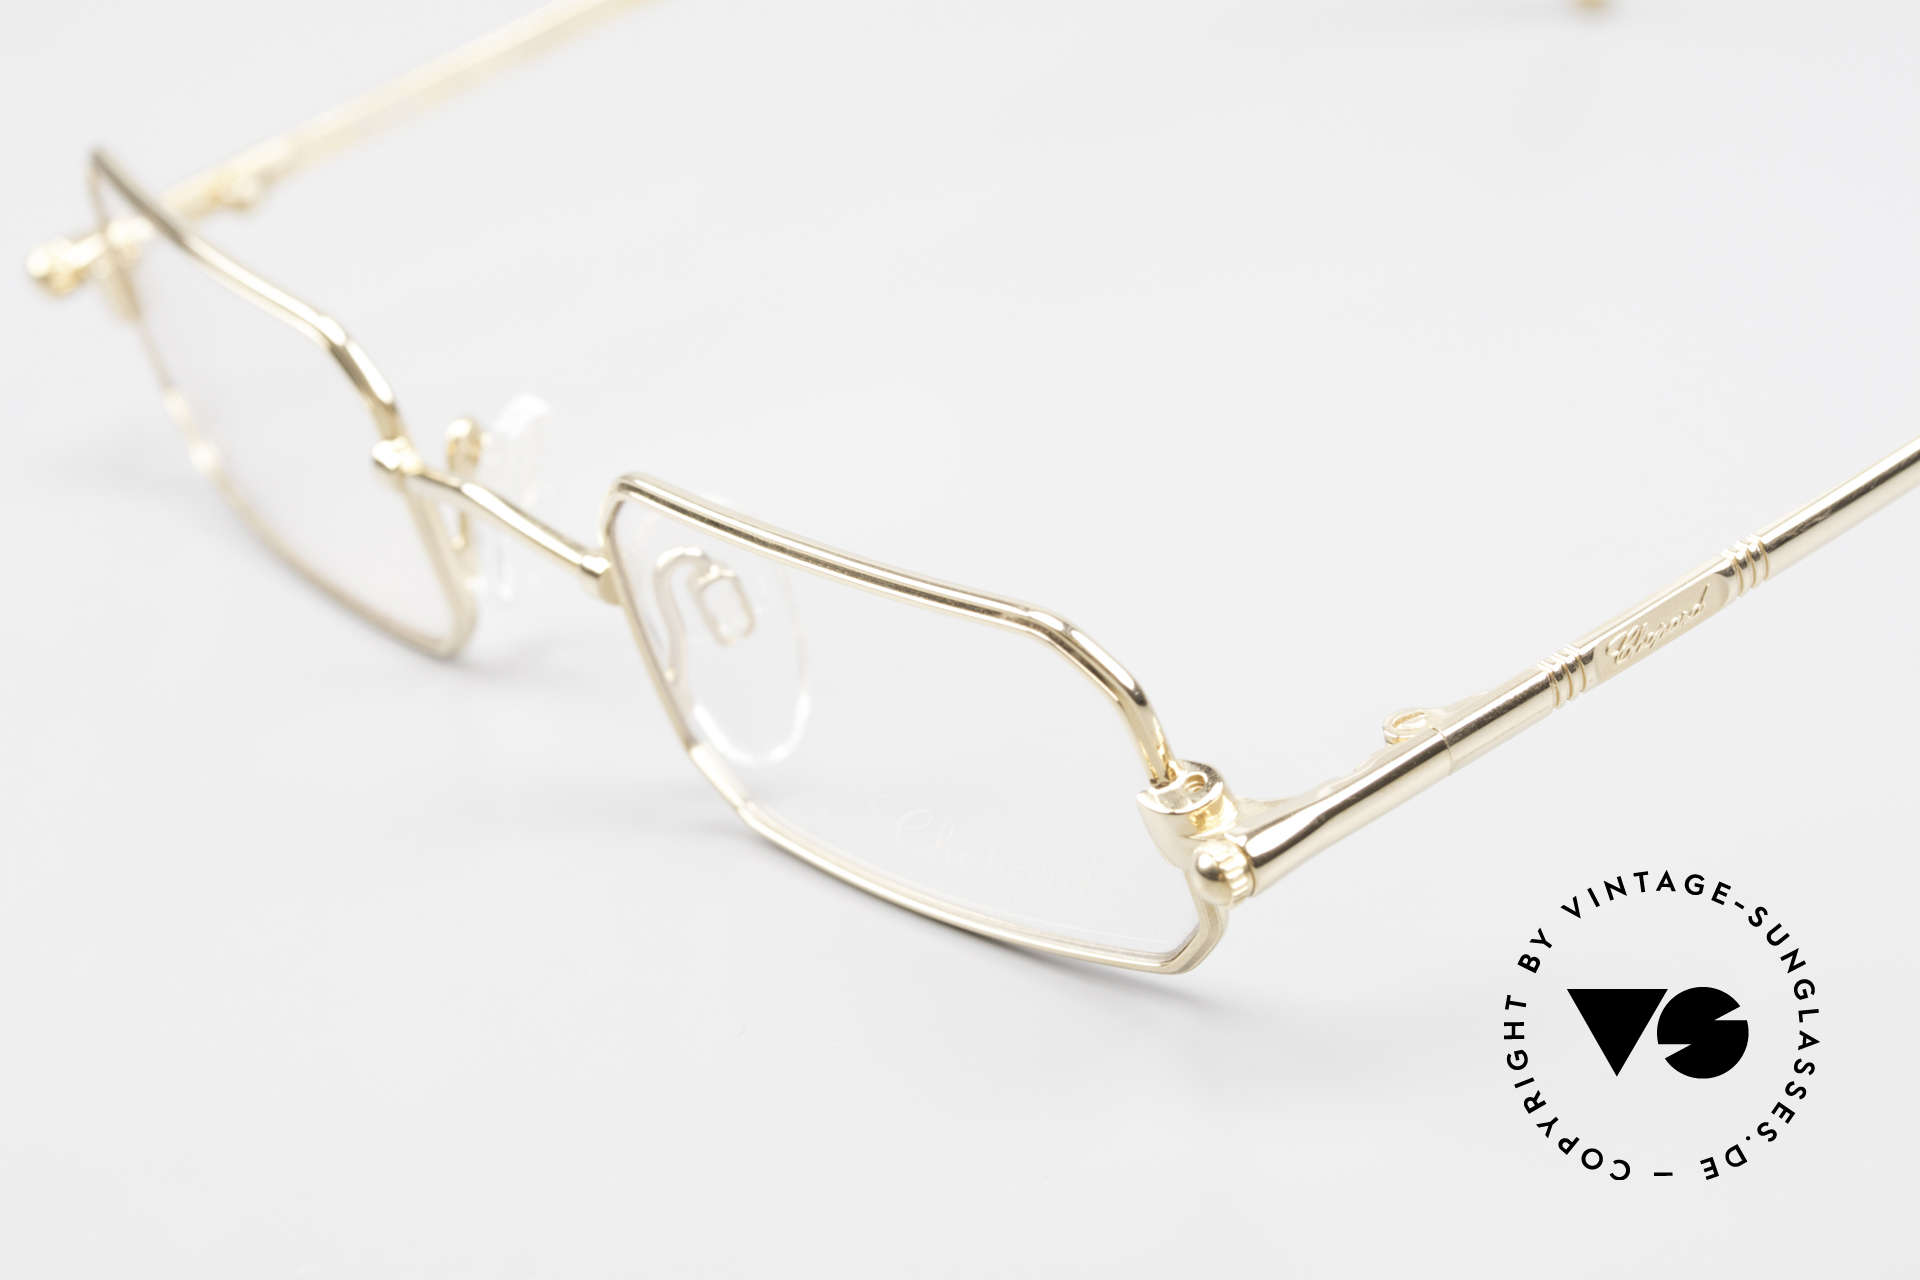 Chopard C002 Octagonal Luxury Eyeglasses, frame is 23kt GOLD-plated (in SMALL size 44-24!), Made for Men and Women